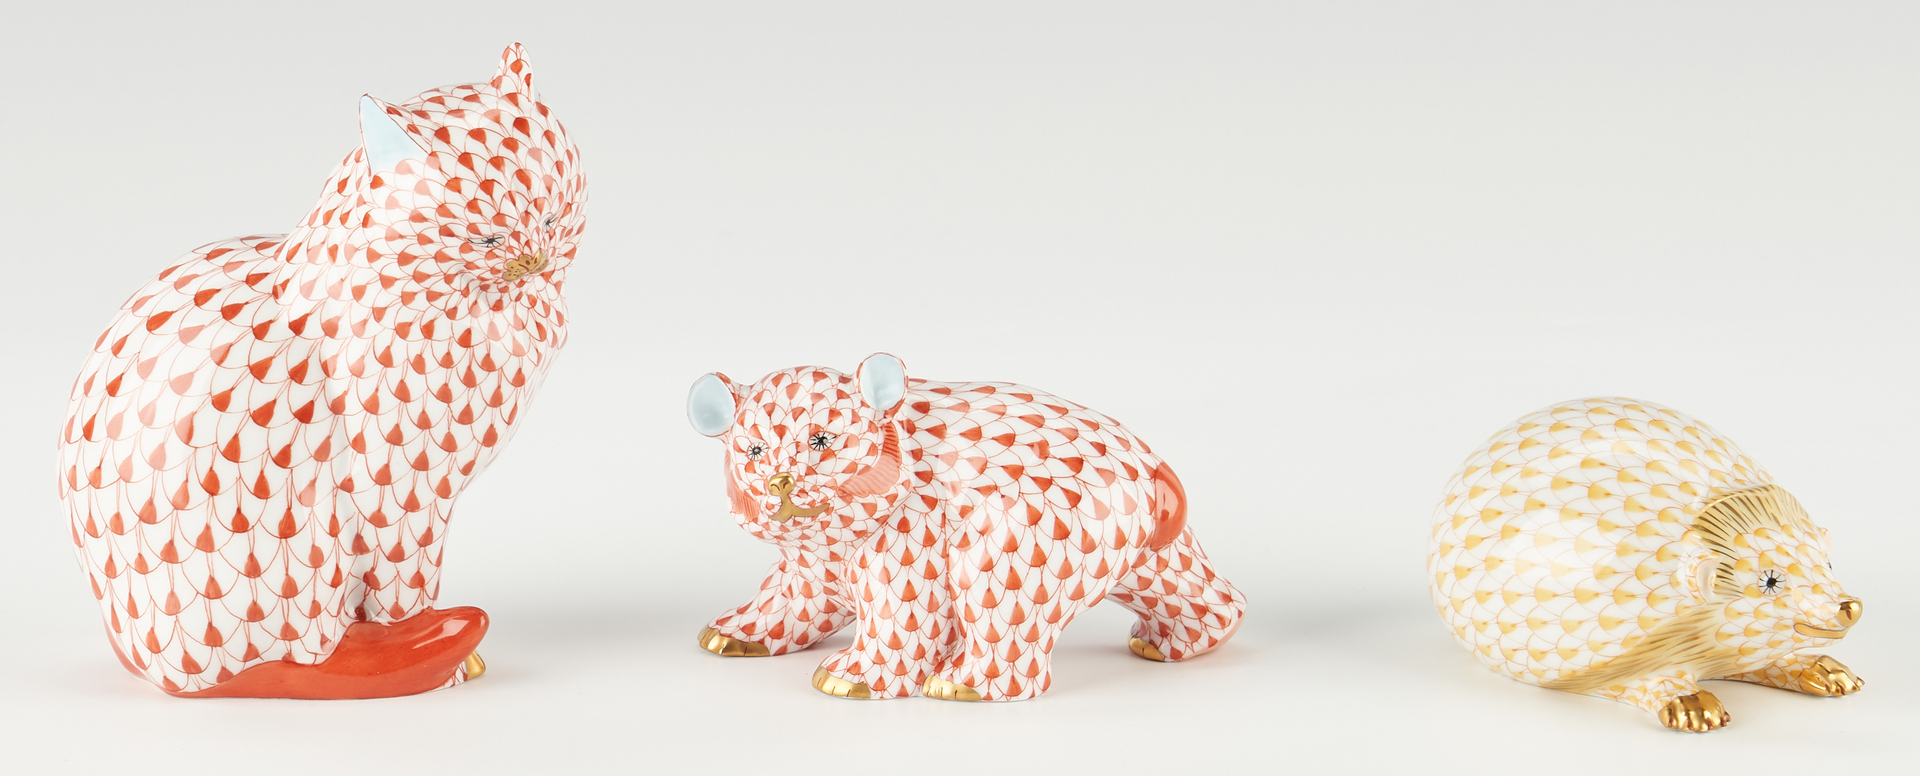 Lot 341: 7 Herend Animal Figurines, incl. Cats, Hedgehog